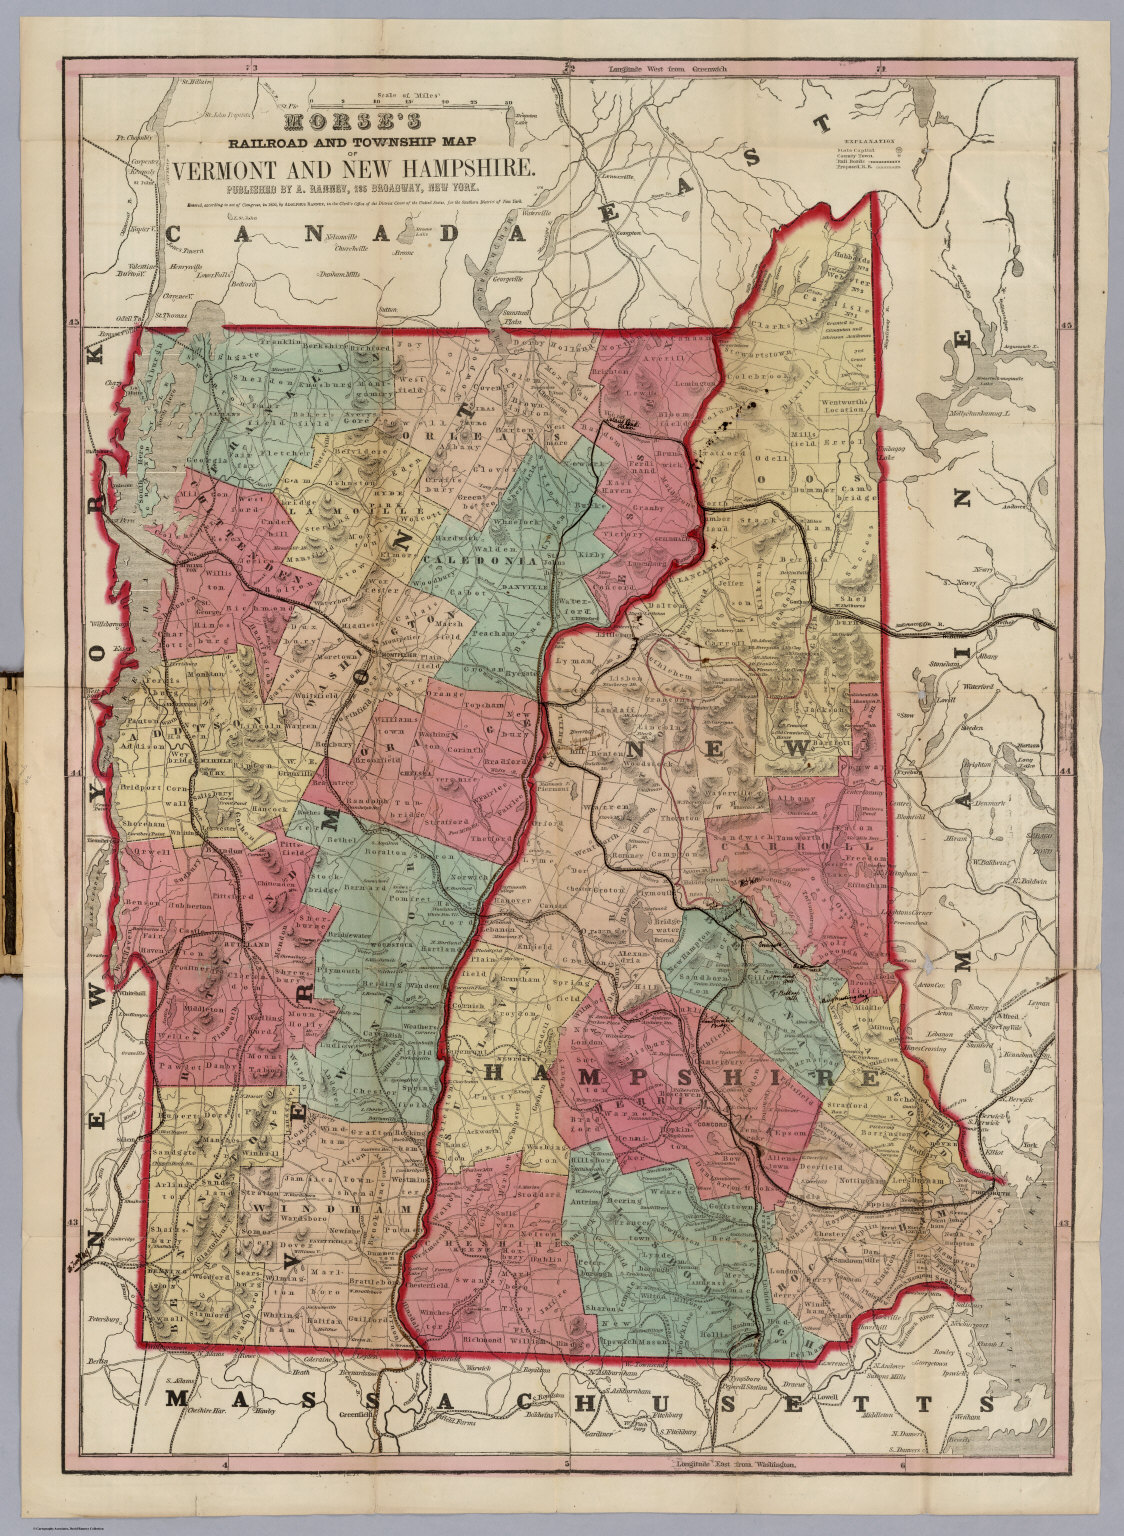 Map Of Vermont And New Hampshire David Rumsey Historical Map - Map of vermont and new hampshire